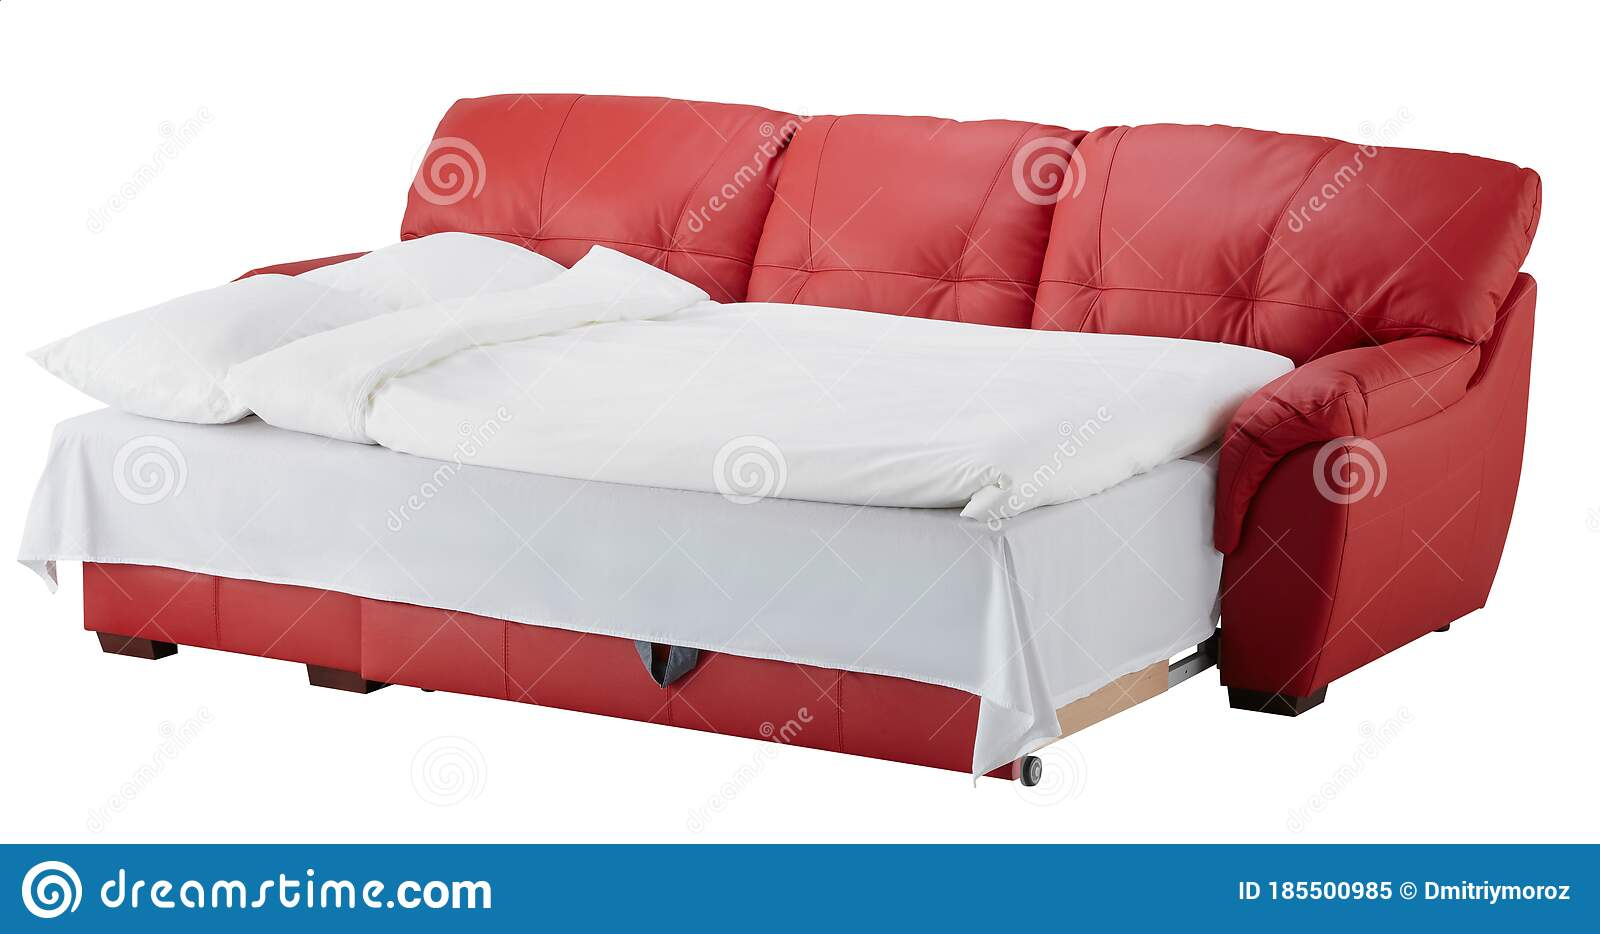 Red Leather Corner Couch Bed Isolated On White Stock Image Image Of Bedroom Design 185500985